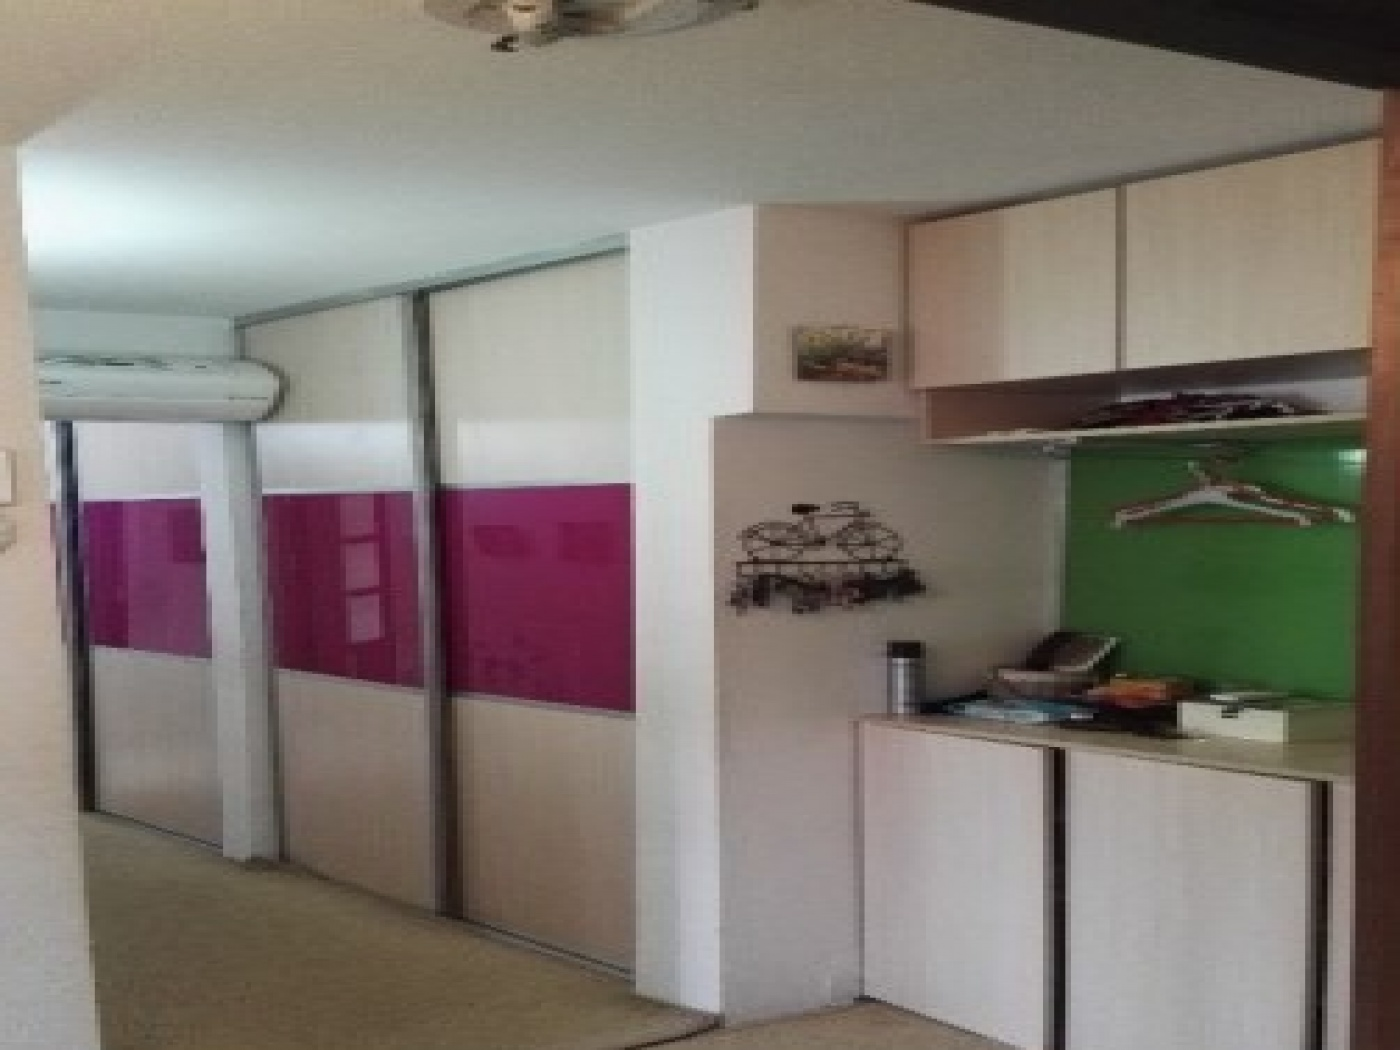 Tomis III,Constanta,Constanta,Romania,2 Bedrooms Bedrooms,3 Rooms Rooms,1 BathroomBathrooms,Apartament 3 camere,2235